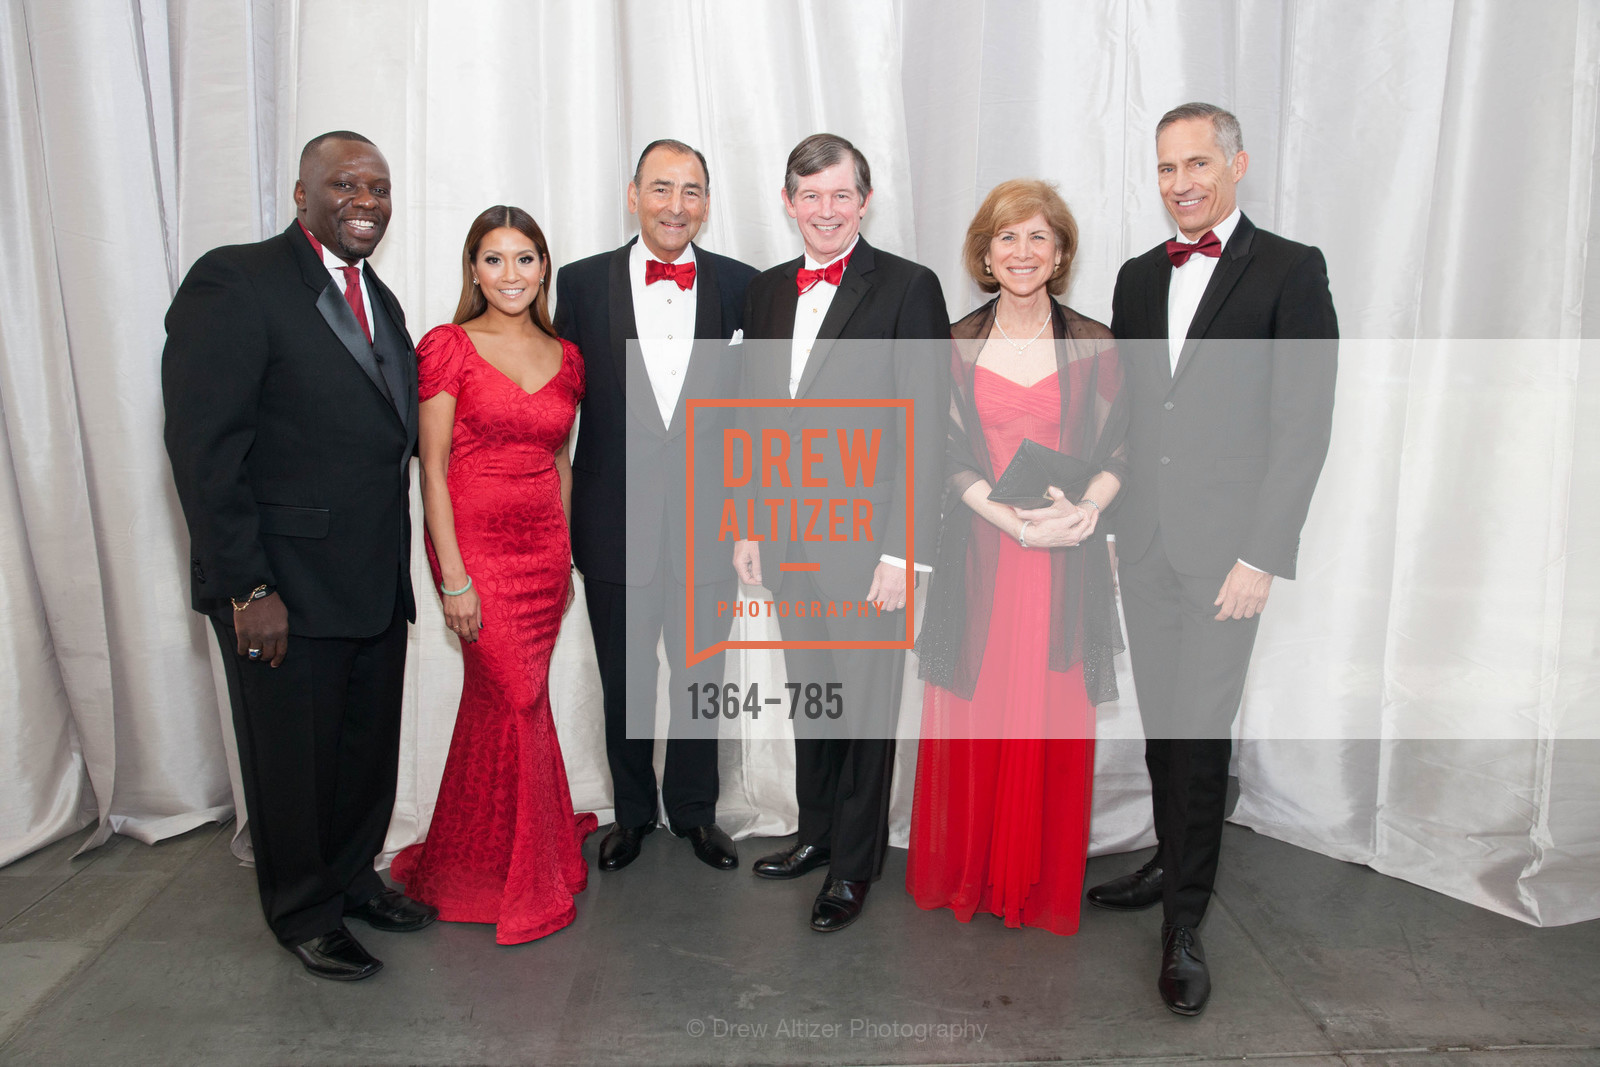 Keith White, Lillian Phan, Alexander Mehran, Anthony Earley, Gail McGovern, Mark Cloutier, 2015 RED CROSS Gala, US, April 12th, 2015,Drew Altizer, Drew Altizer Photography, full-service agency, private events, San Francisco photographer, photographer california